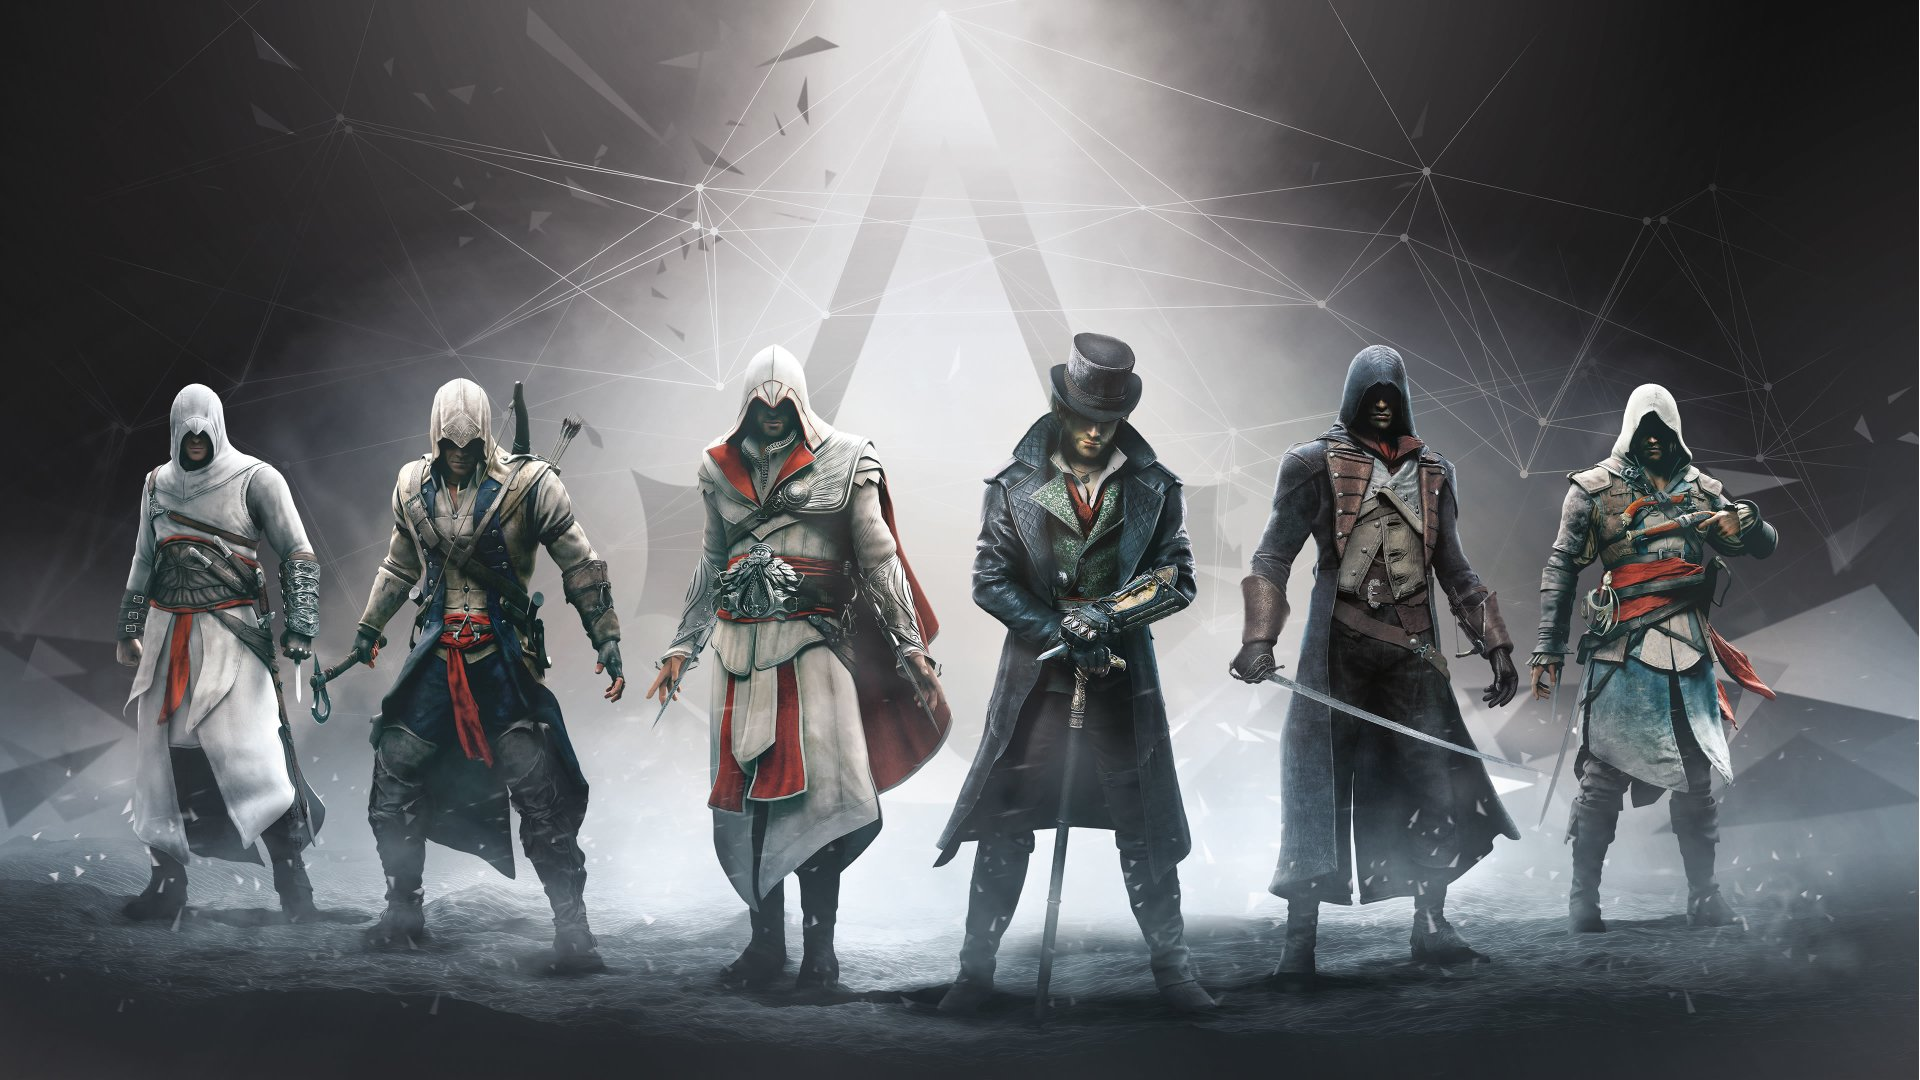 Video Game - Assassin's Creed  Altair (Assassin's Creed) Ezio (Assassin's Creed) Jacob Frye Connor (Assassin's Creed) Edward Kenway Wallpaper